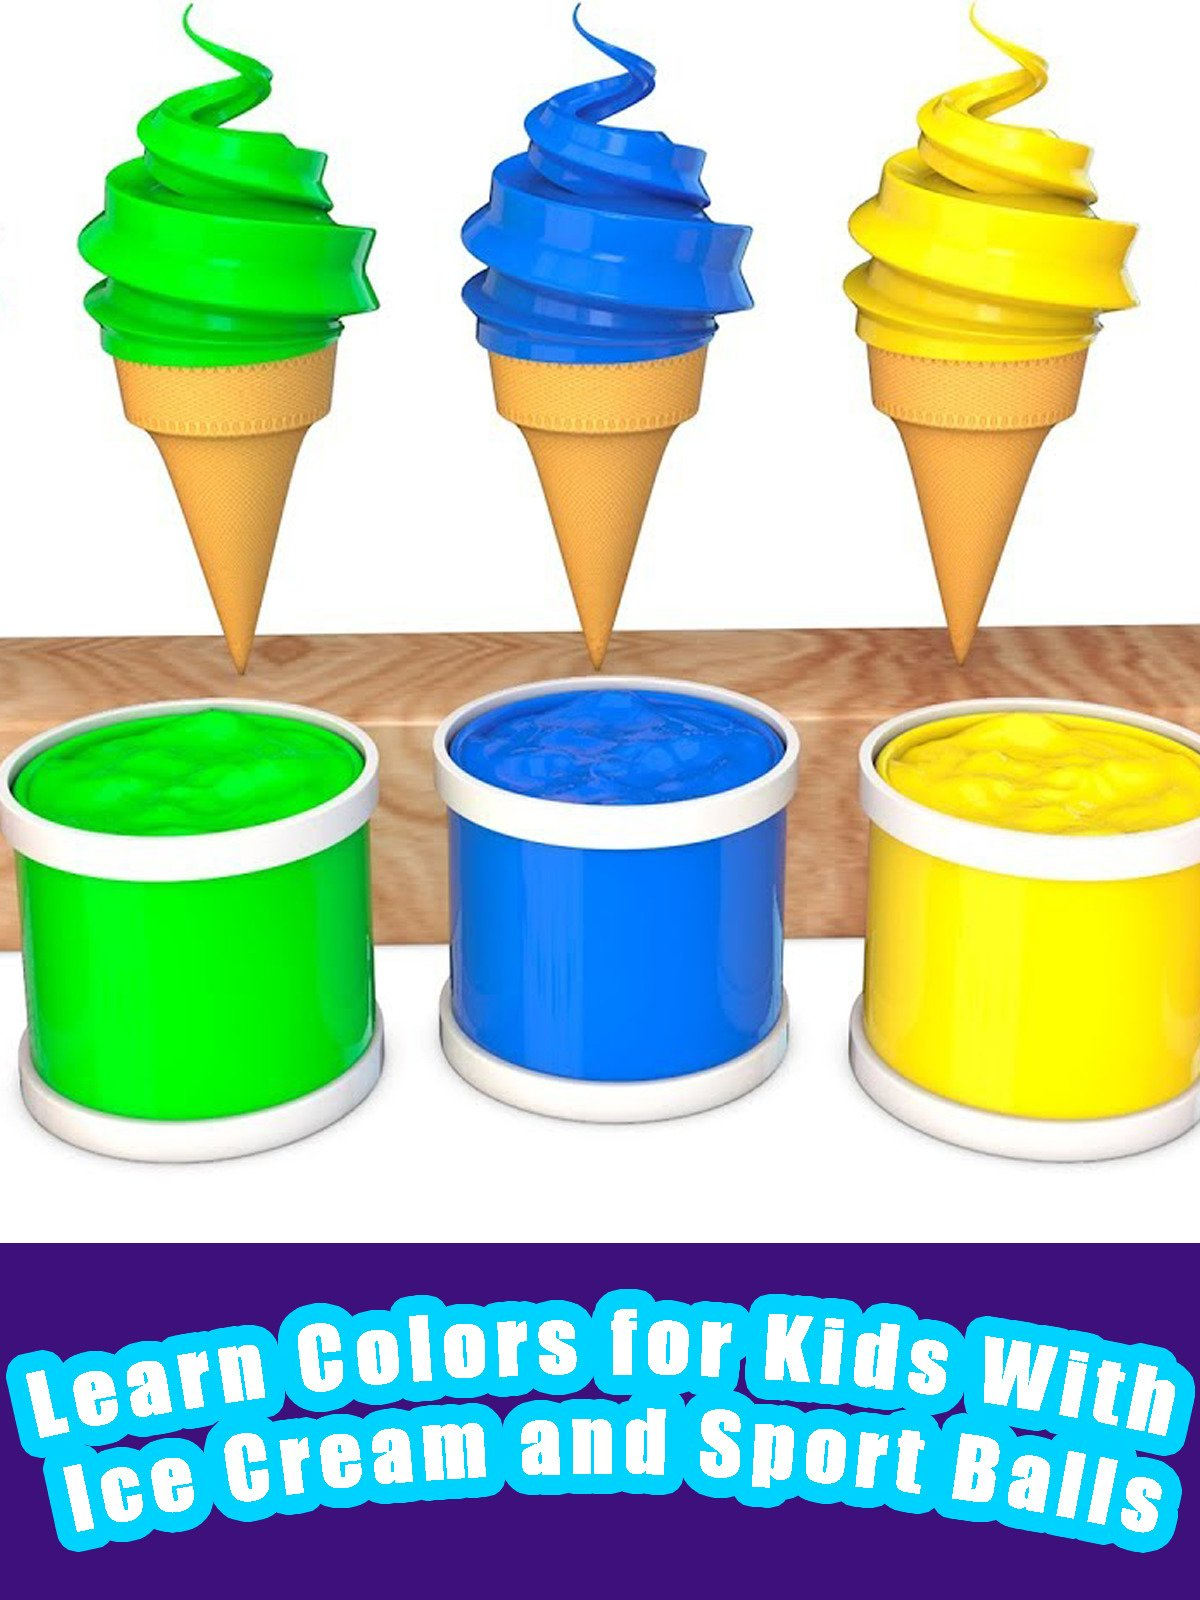 Learn Colors for Kids With Ice Cream and Sport Balls on Amazon Prime Video UK